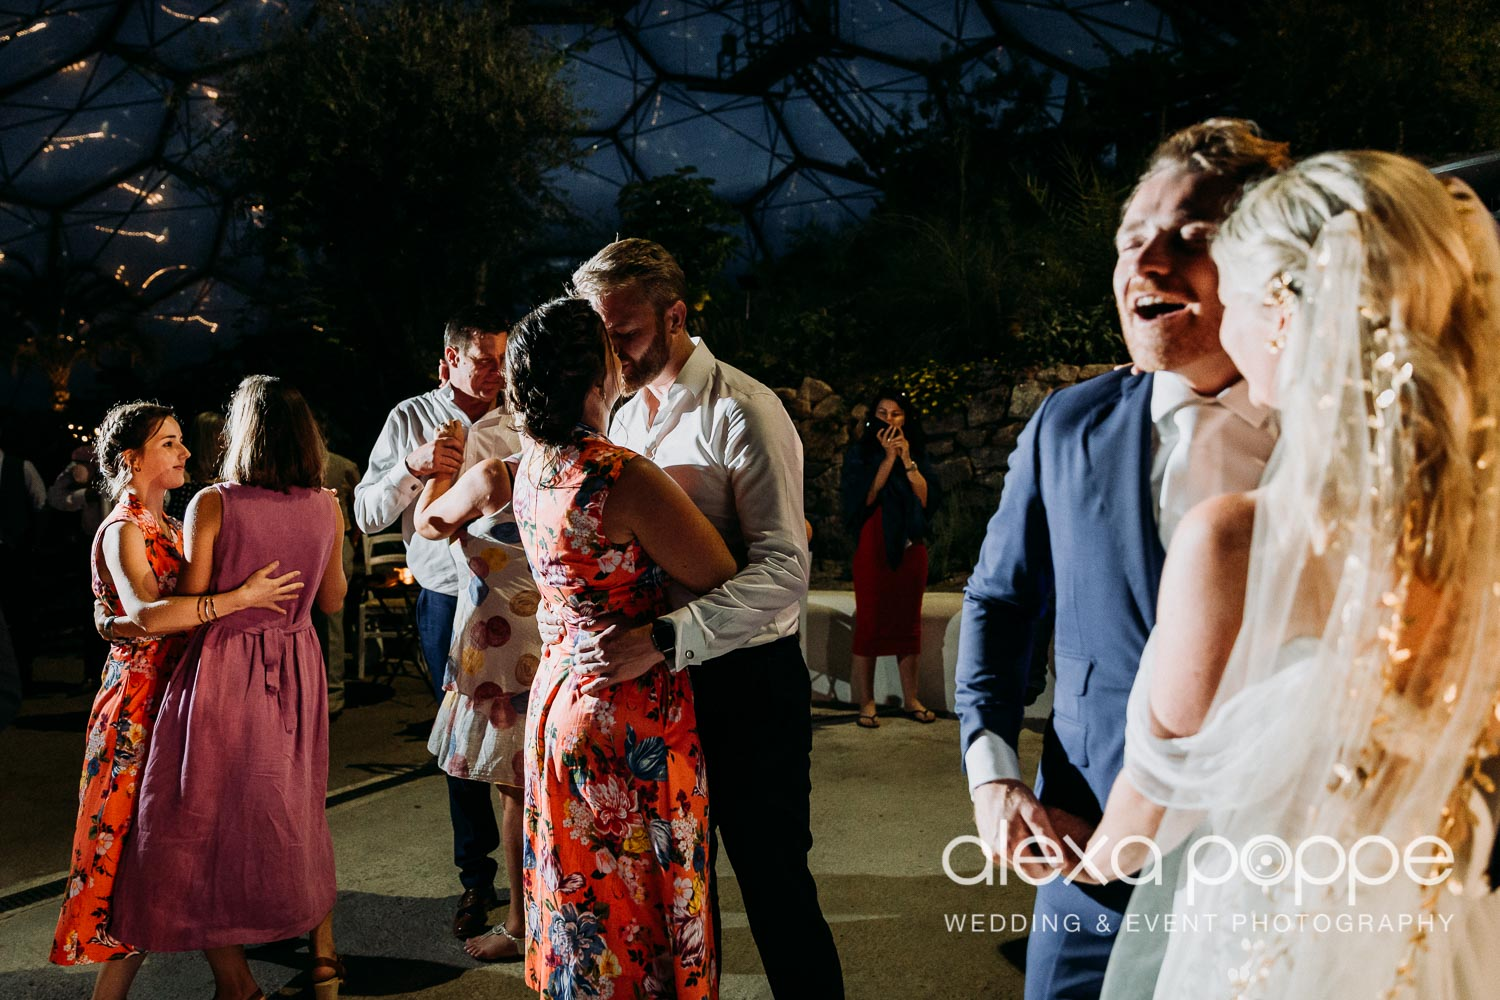 VA_wedding_edenproject_carnglaze_108.jpg